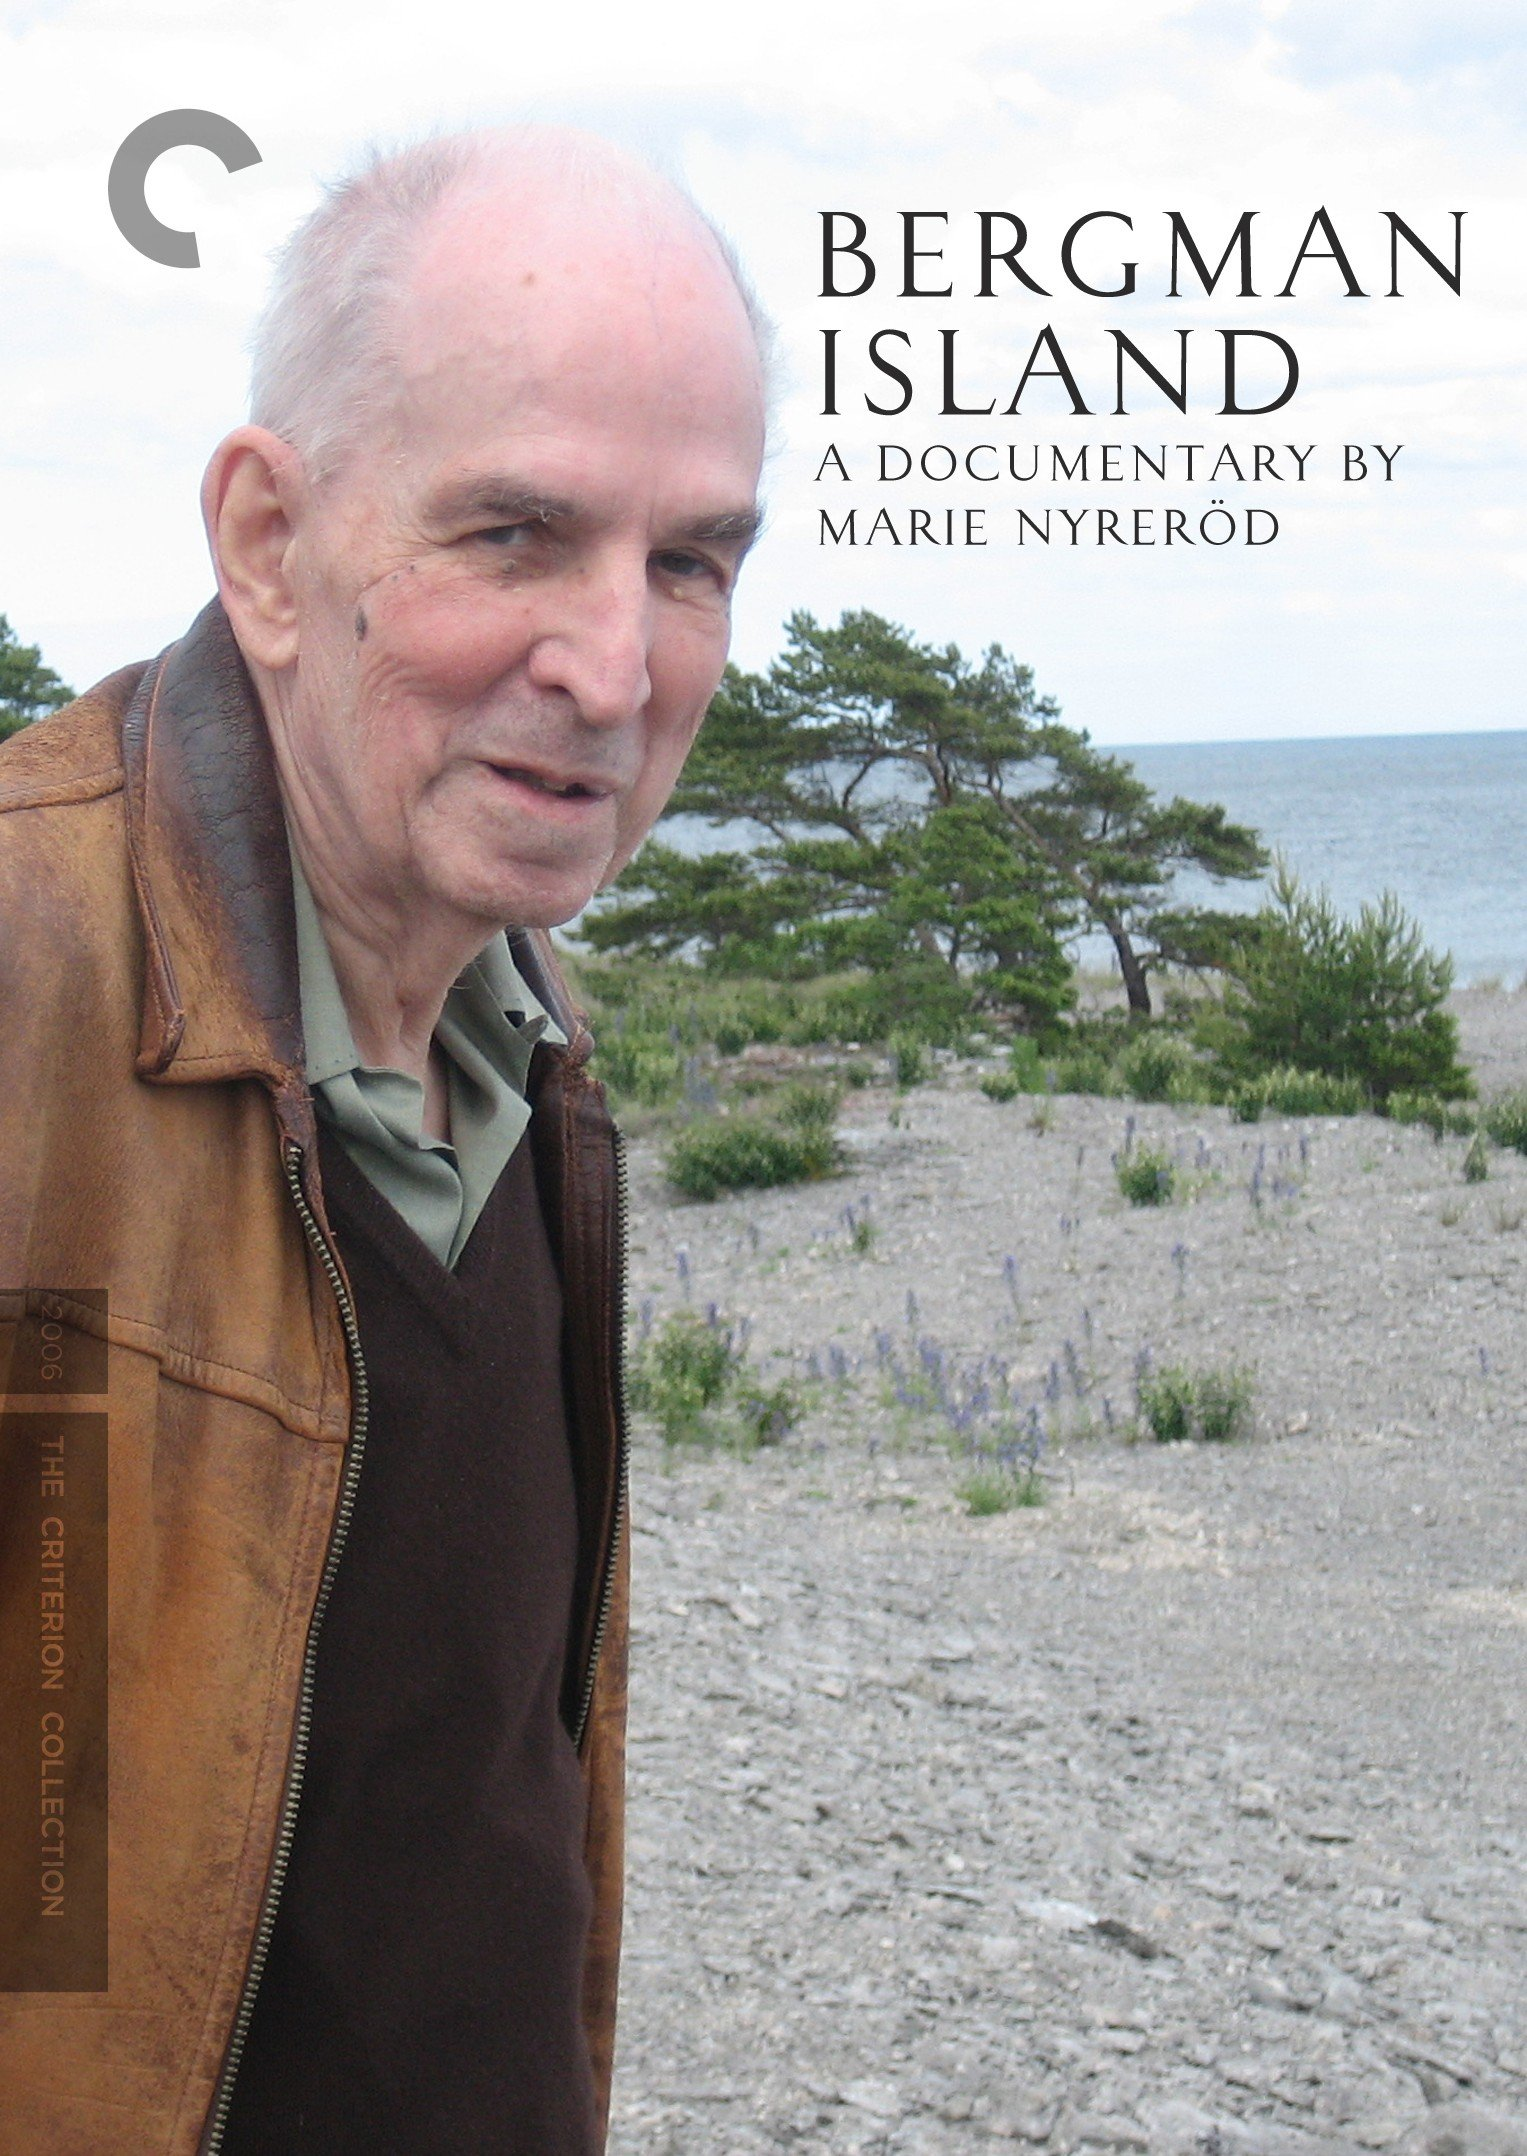 Bergman Island (The Criterion Collection)